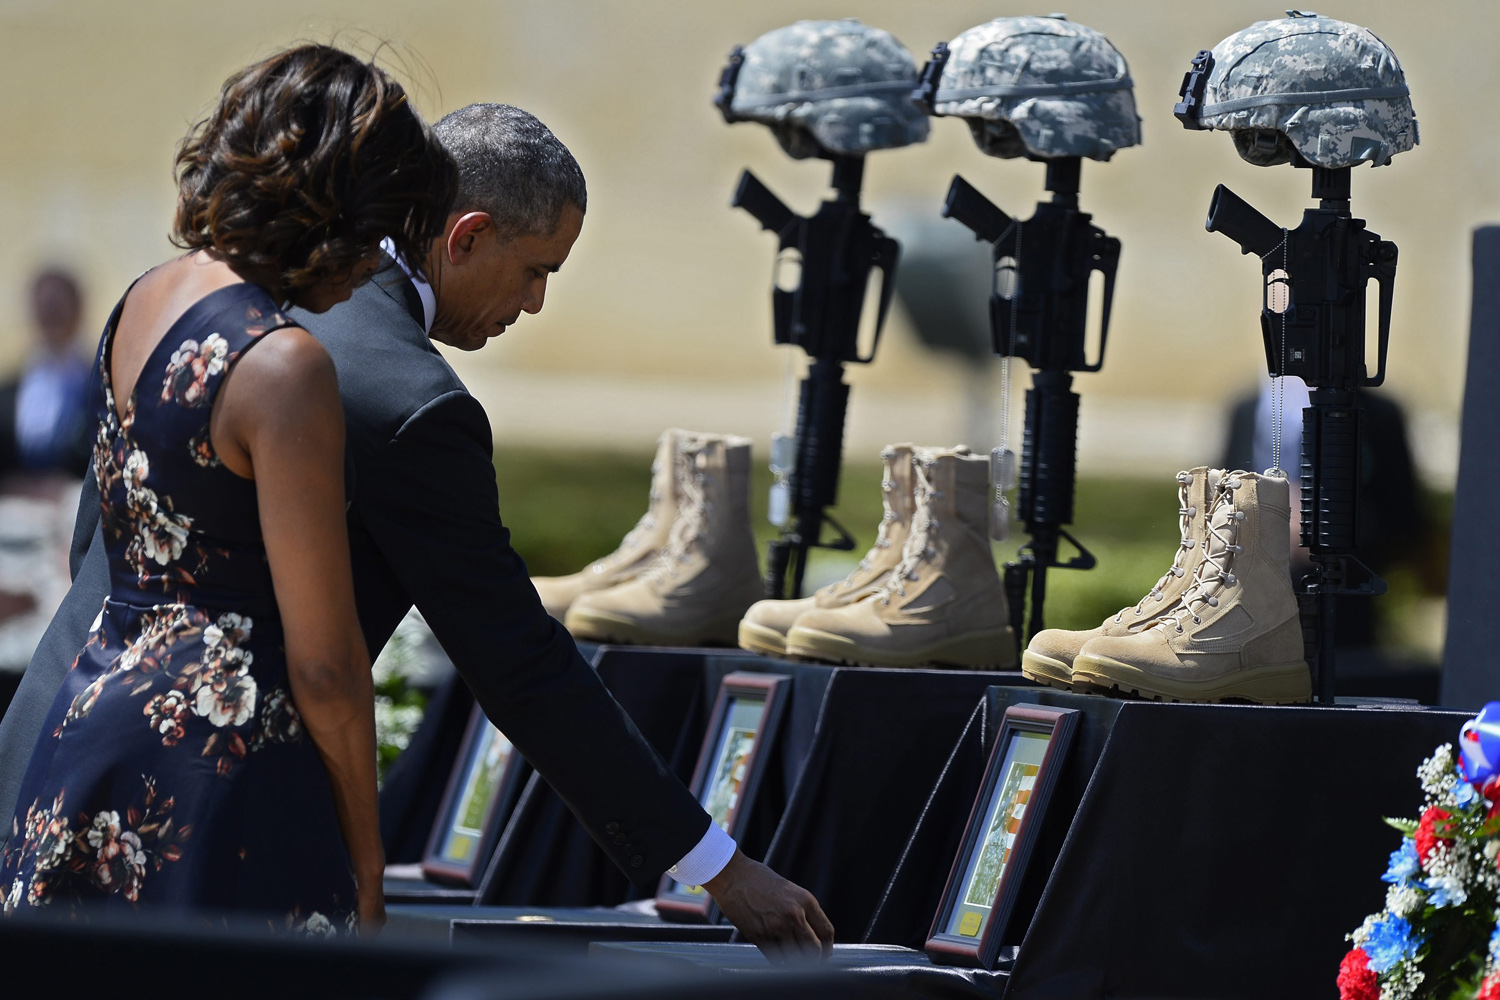 Arp. 9, 2014. President Barack Obama (2-L) first lady Michelle Obama (L) pay their last respects to three soldiers during a memorial service at Fort Hood military base near Killeen, Texas.